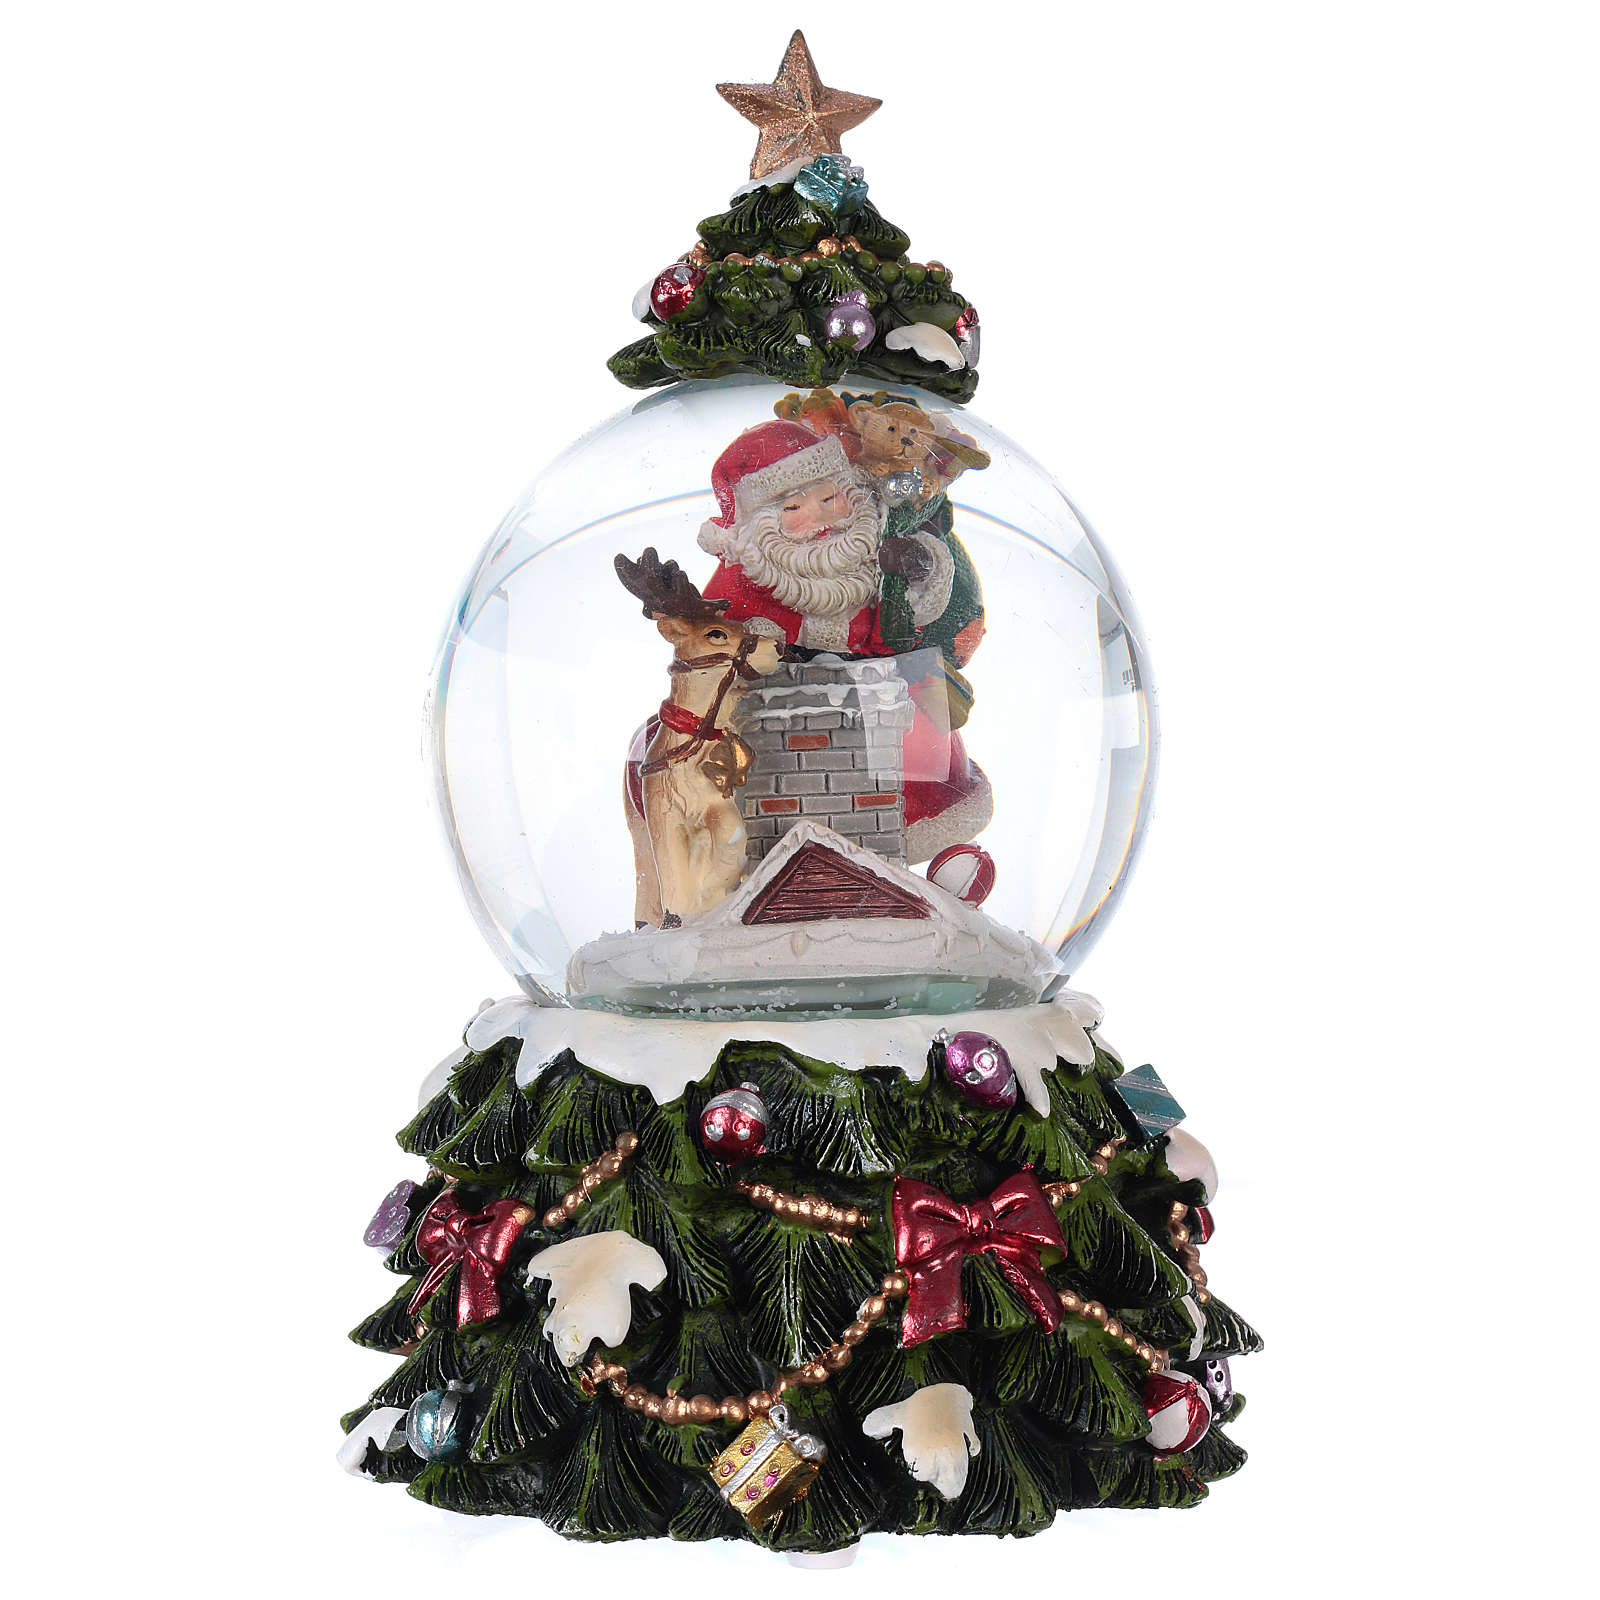 Snow globe with music box Santa Claus, reindeer and chimney, glittered 3